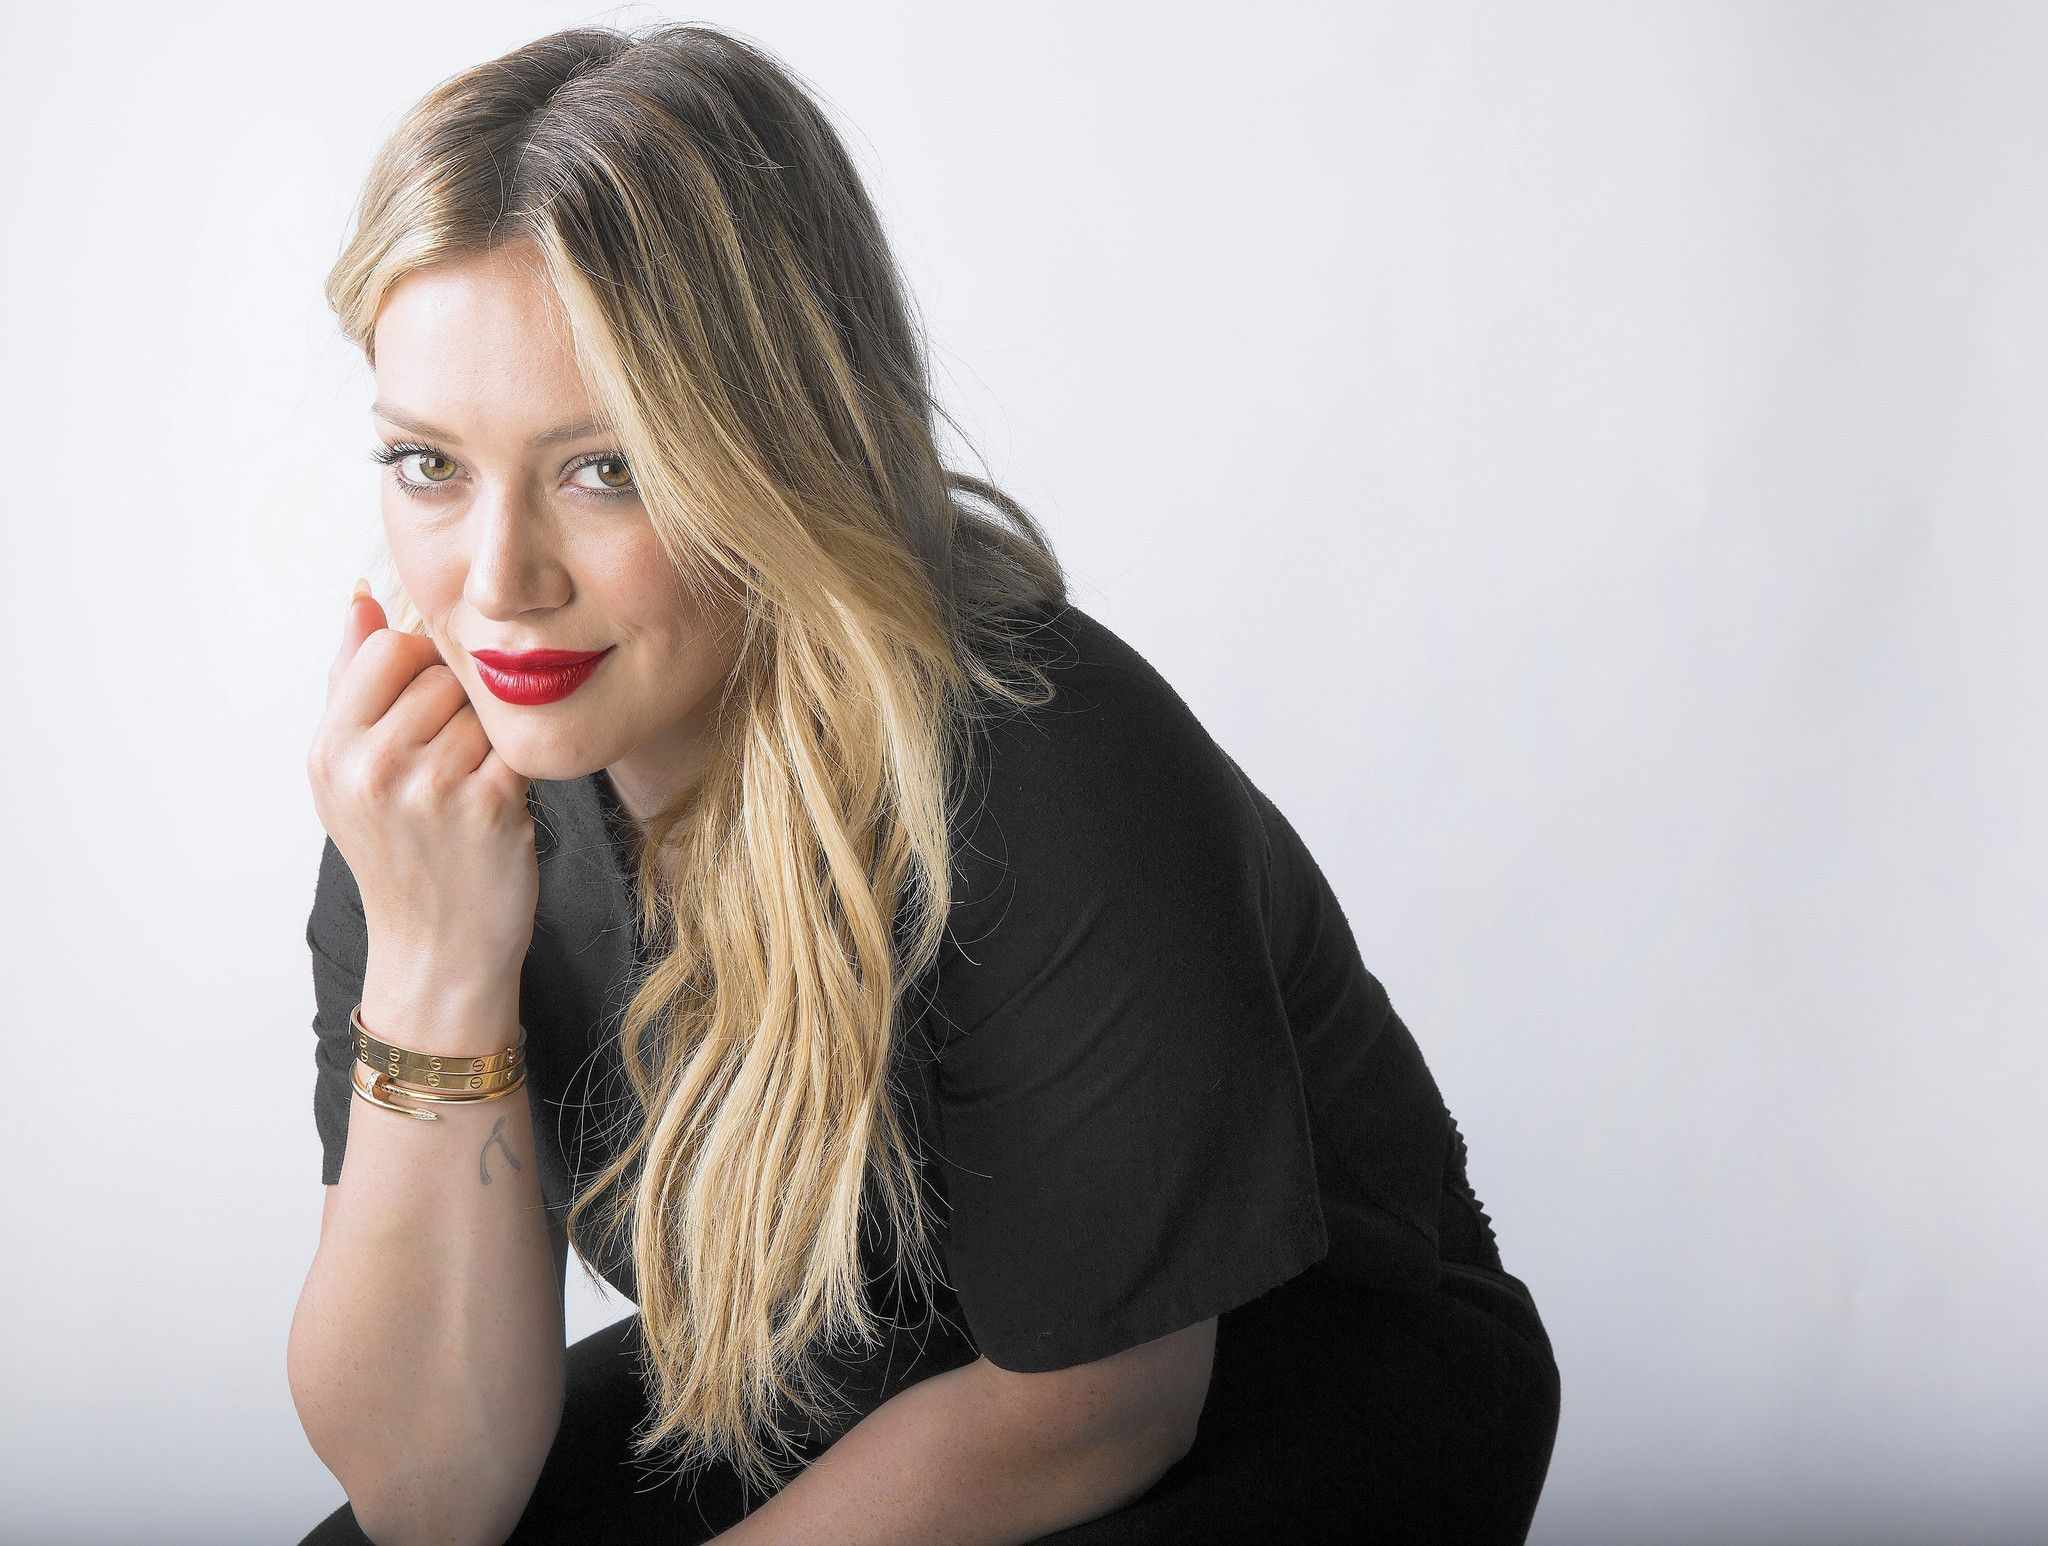 hilary duff wallpapers images photos pictures backgrounds